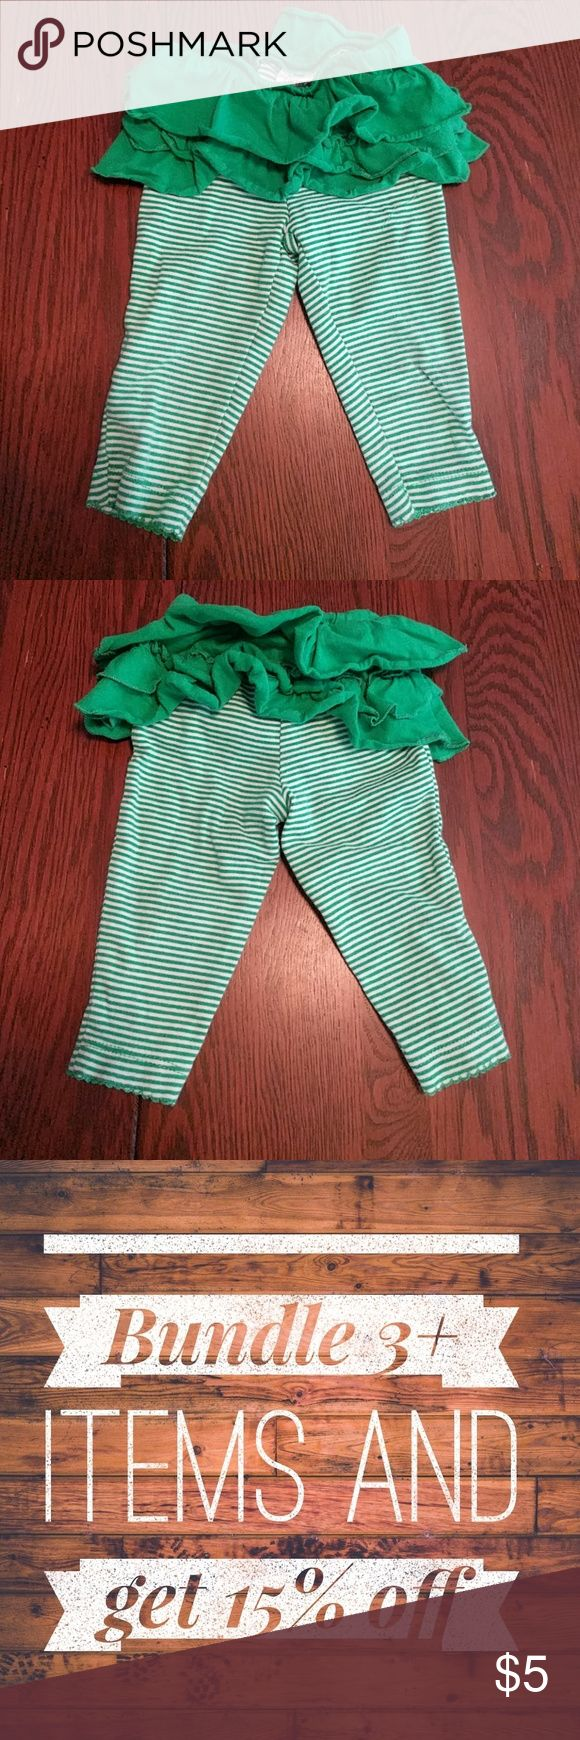 Carter's Leggings 6 months These leggings are in great used condition, no stains rips or pulls. Perfect for St Patrick's Day or Christmas. From a smoke and pet free home. Carter's Bottoms Leggings